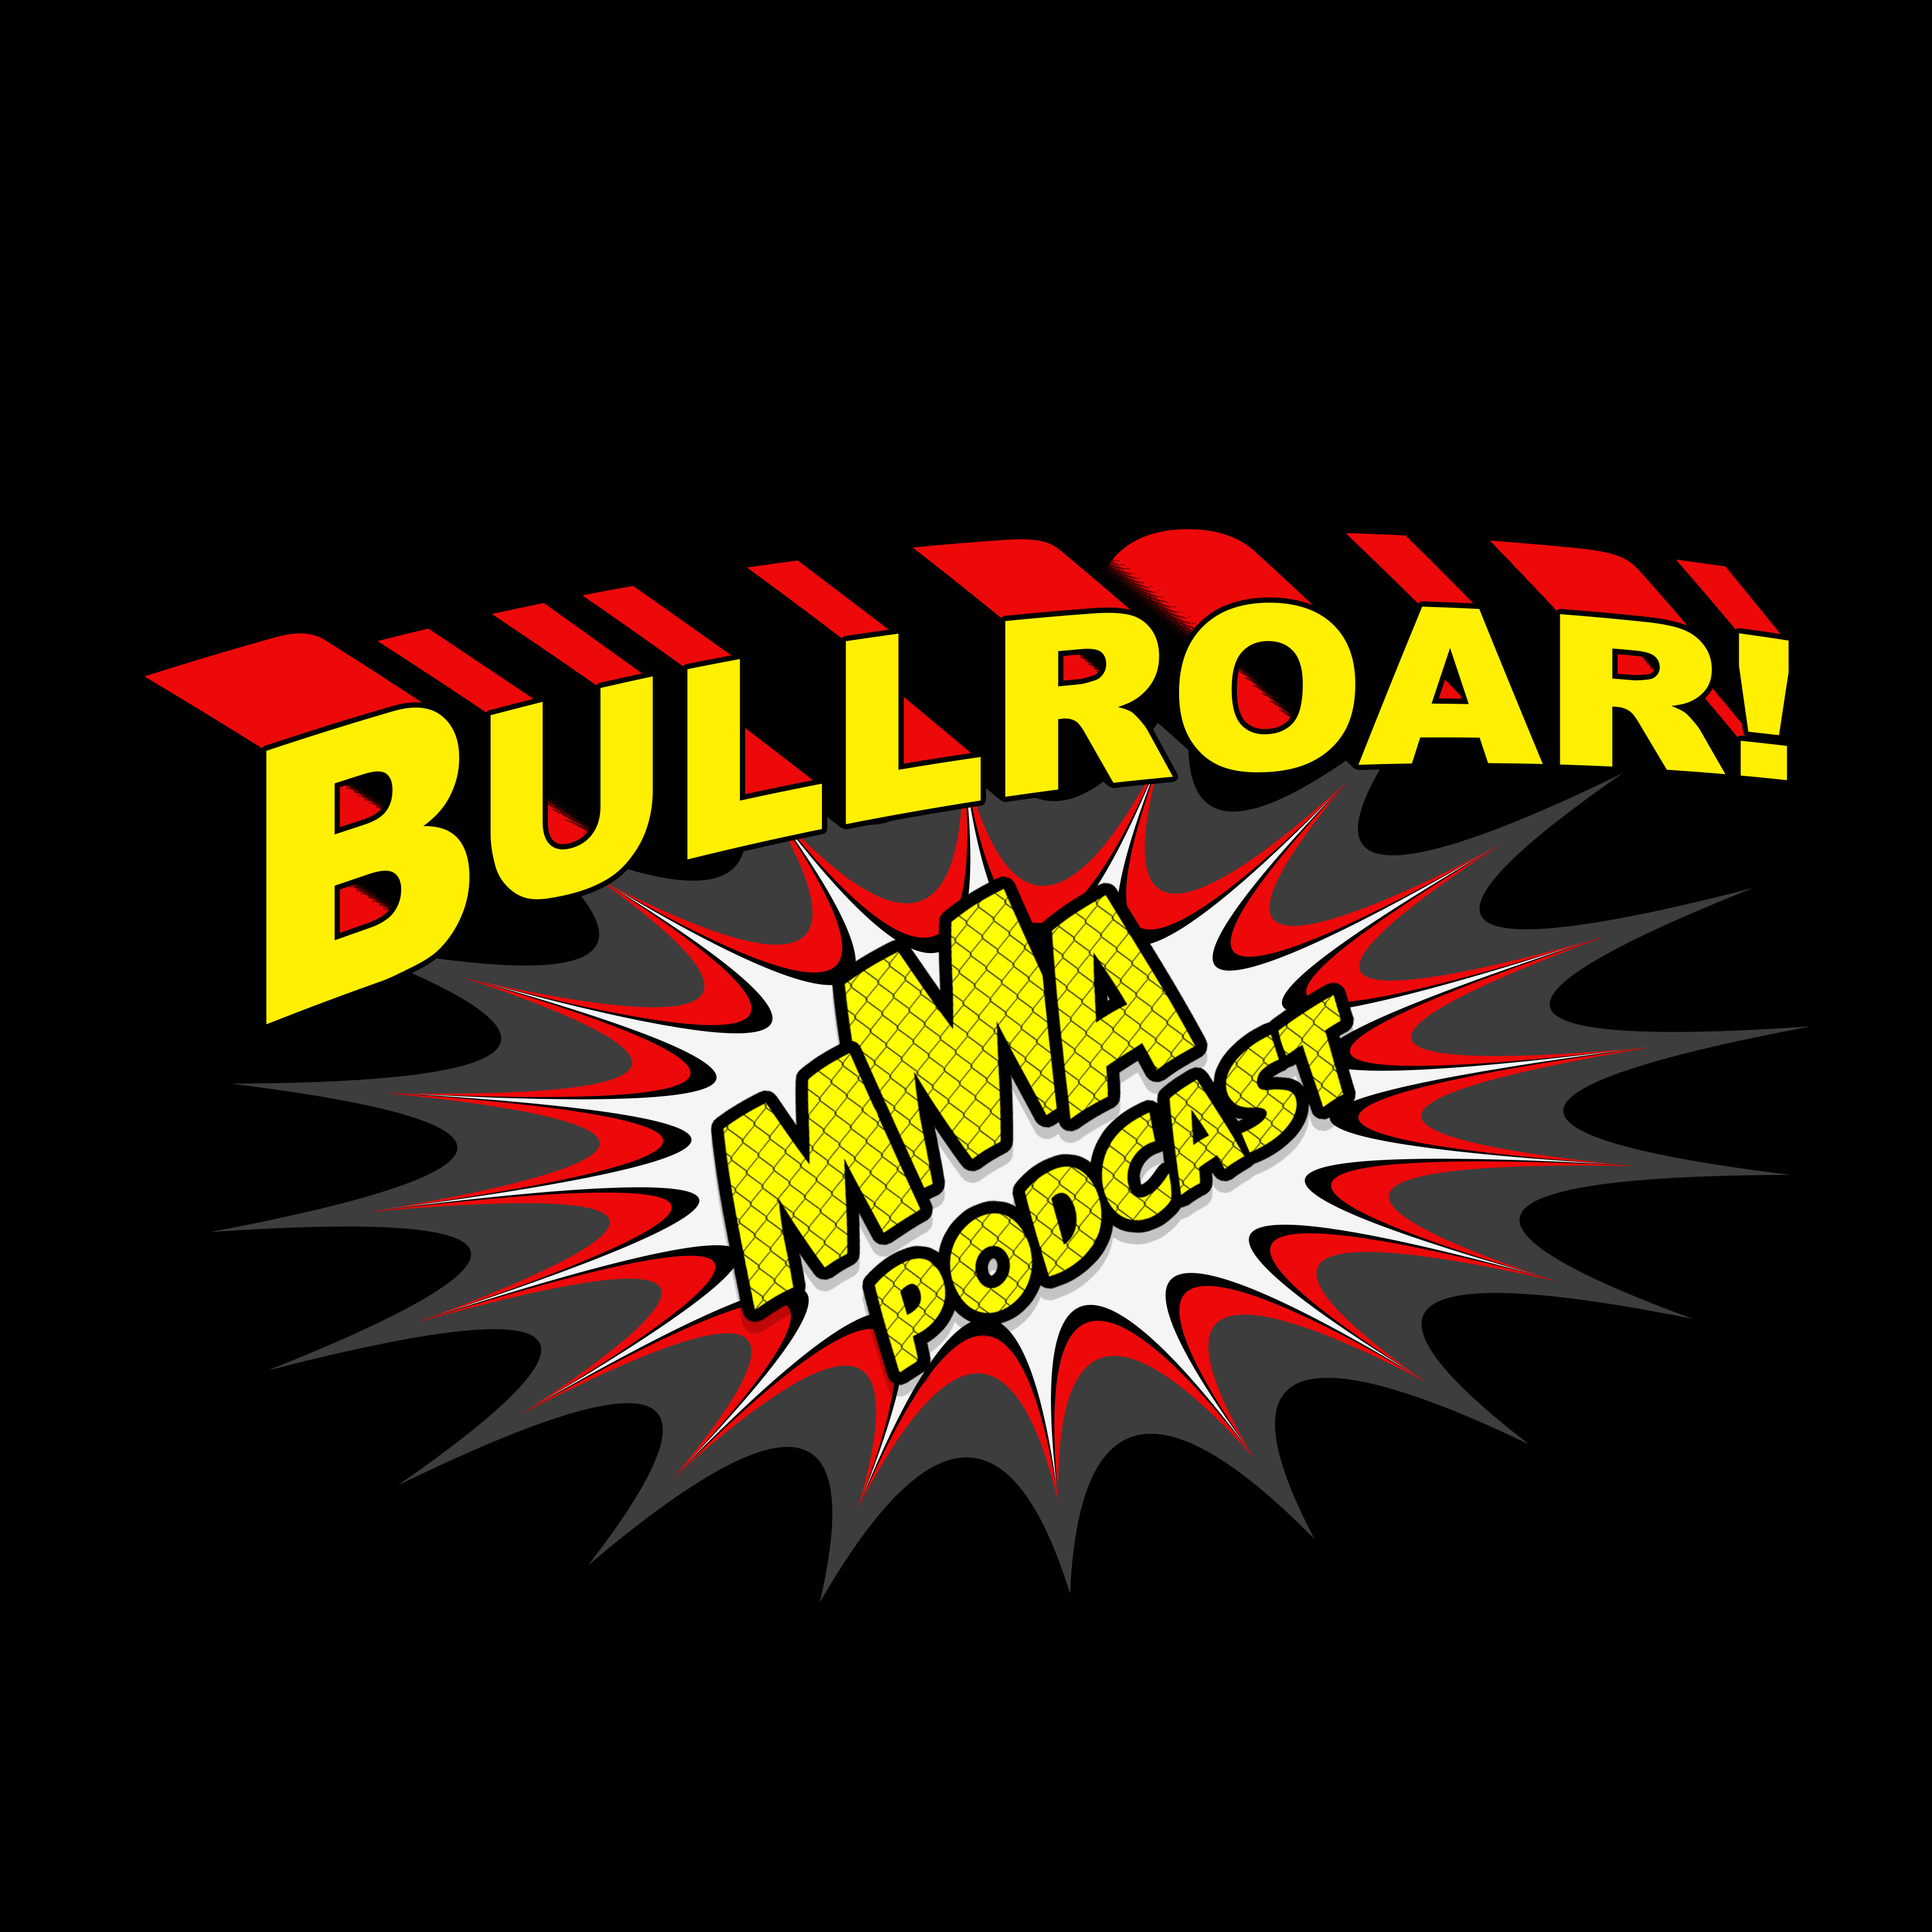 The Bullroar! MMA Podcast show art